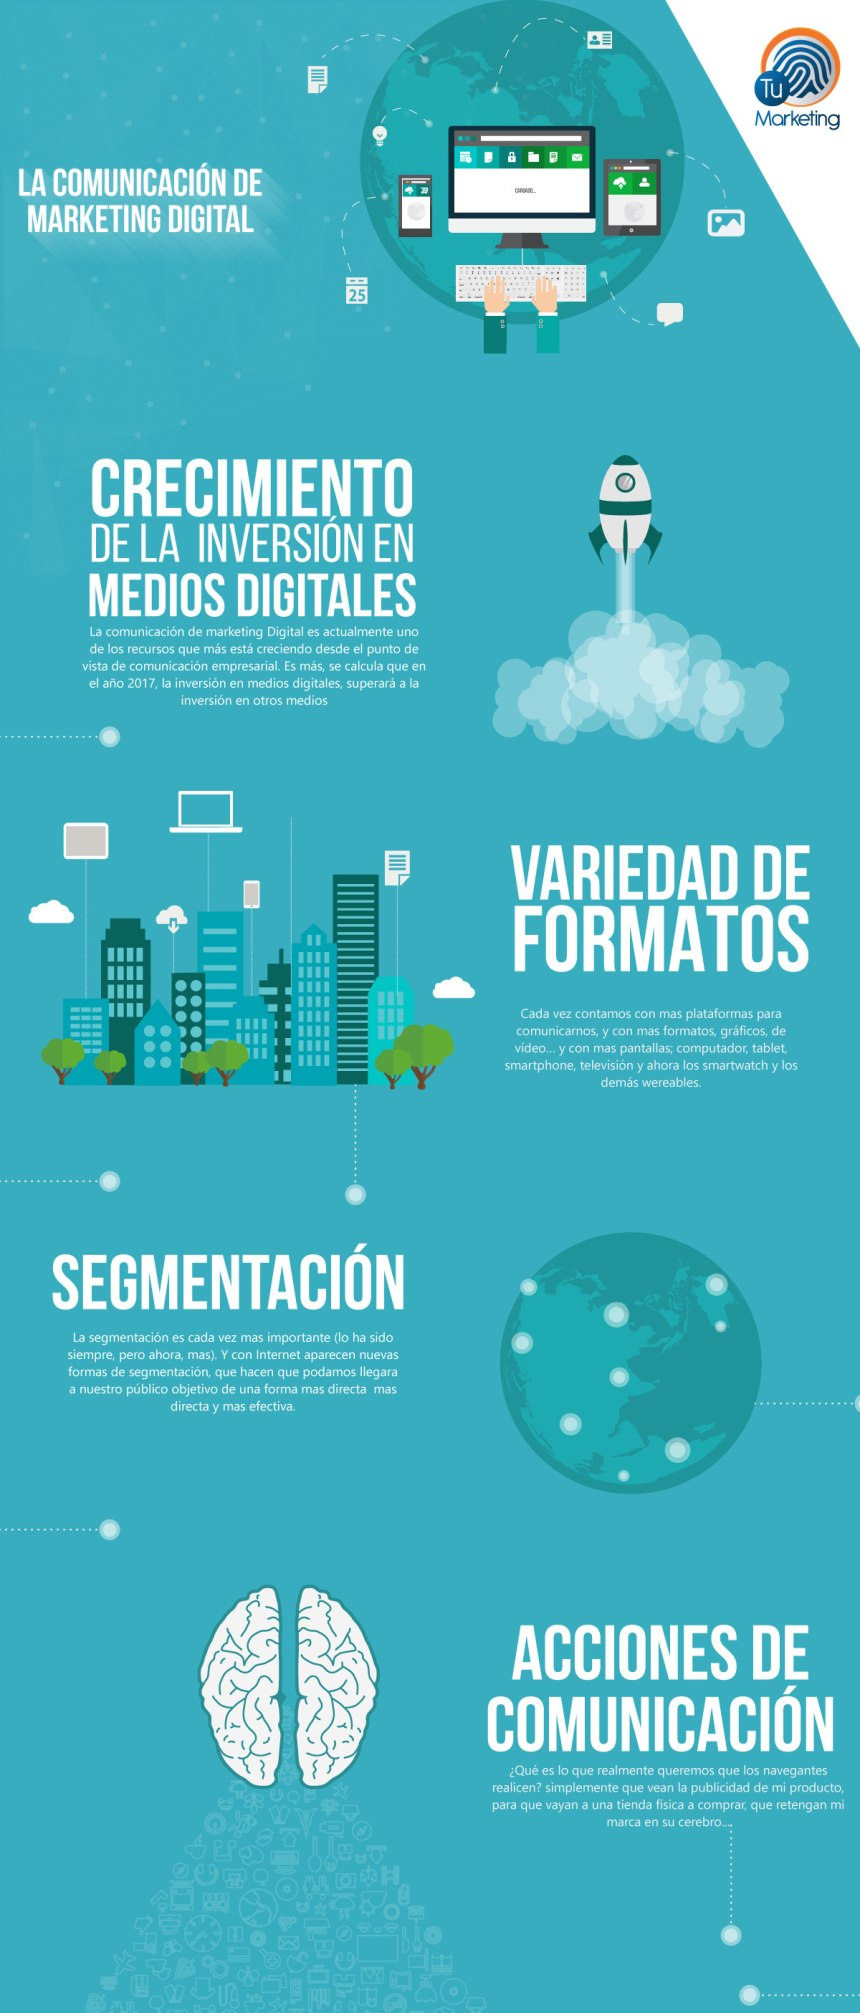 La comunicación de Marketing Digital